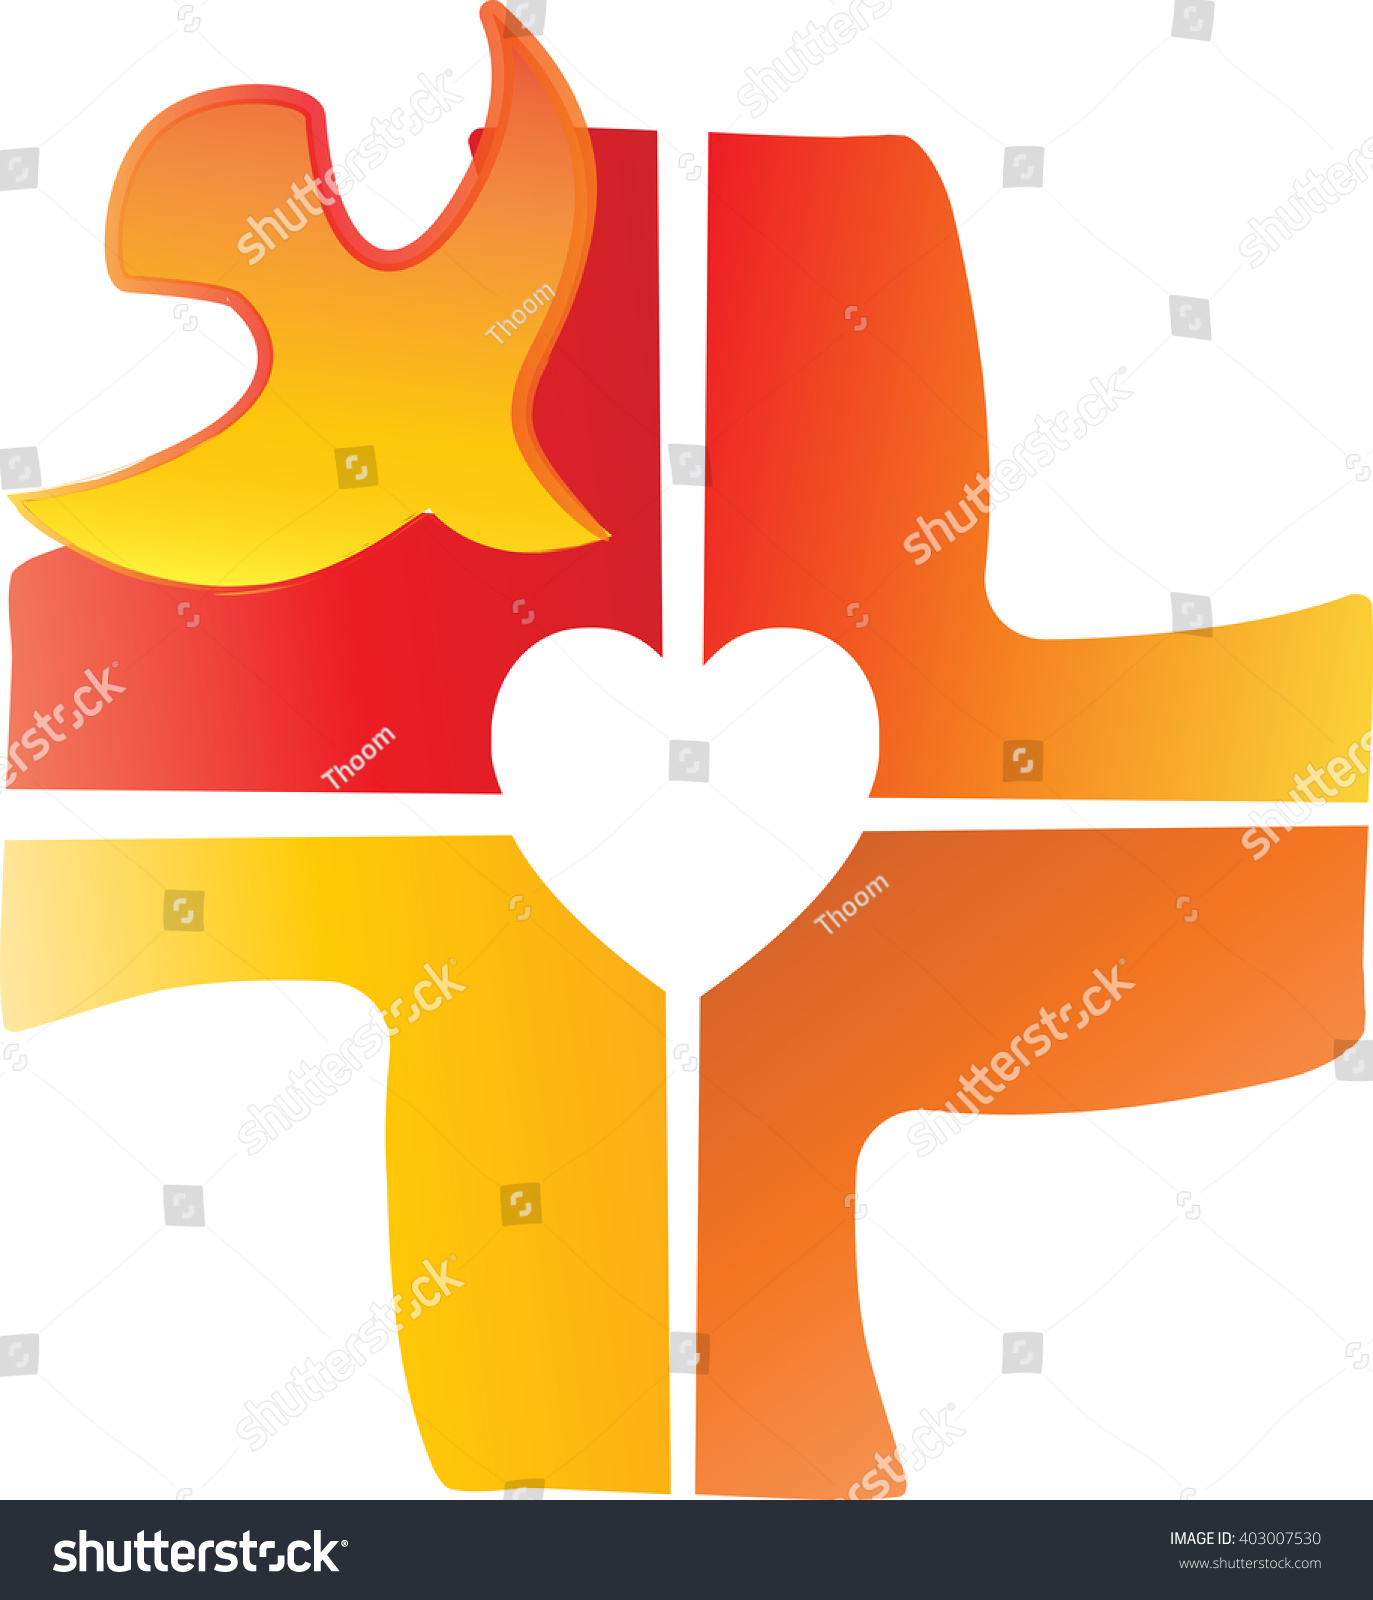 Dove symbol holy spirit on cross stock vector 403007530 shutterstock a dove symbol of the holy spirit on a cross carved in a shape of biocorpaavc Image collections